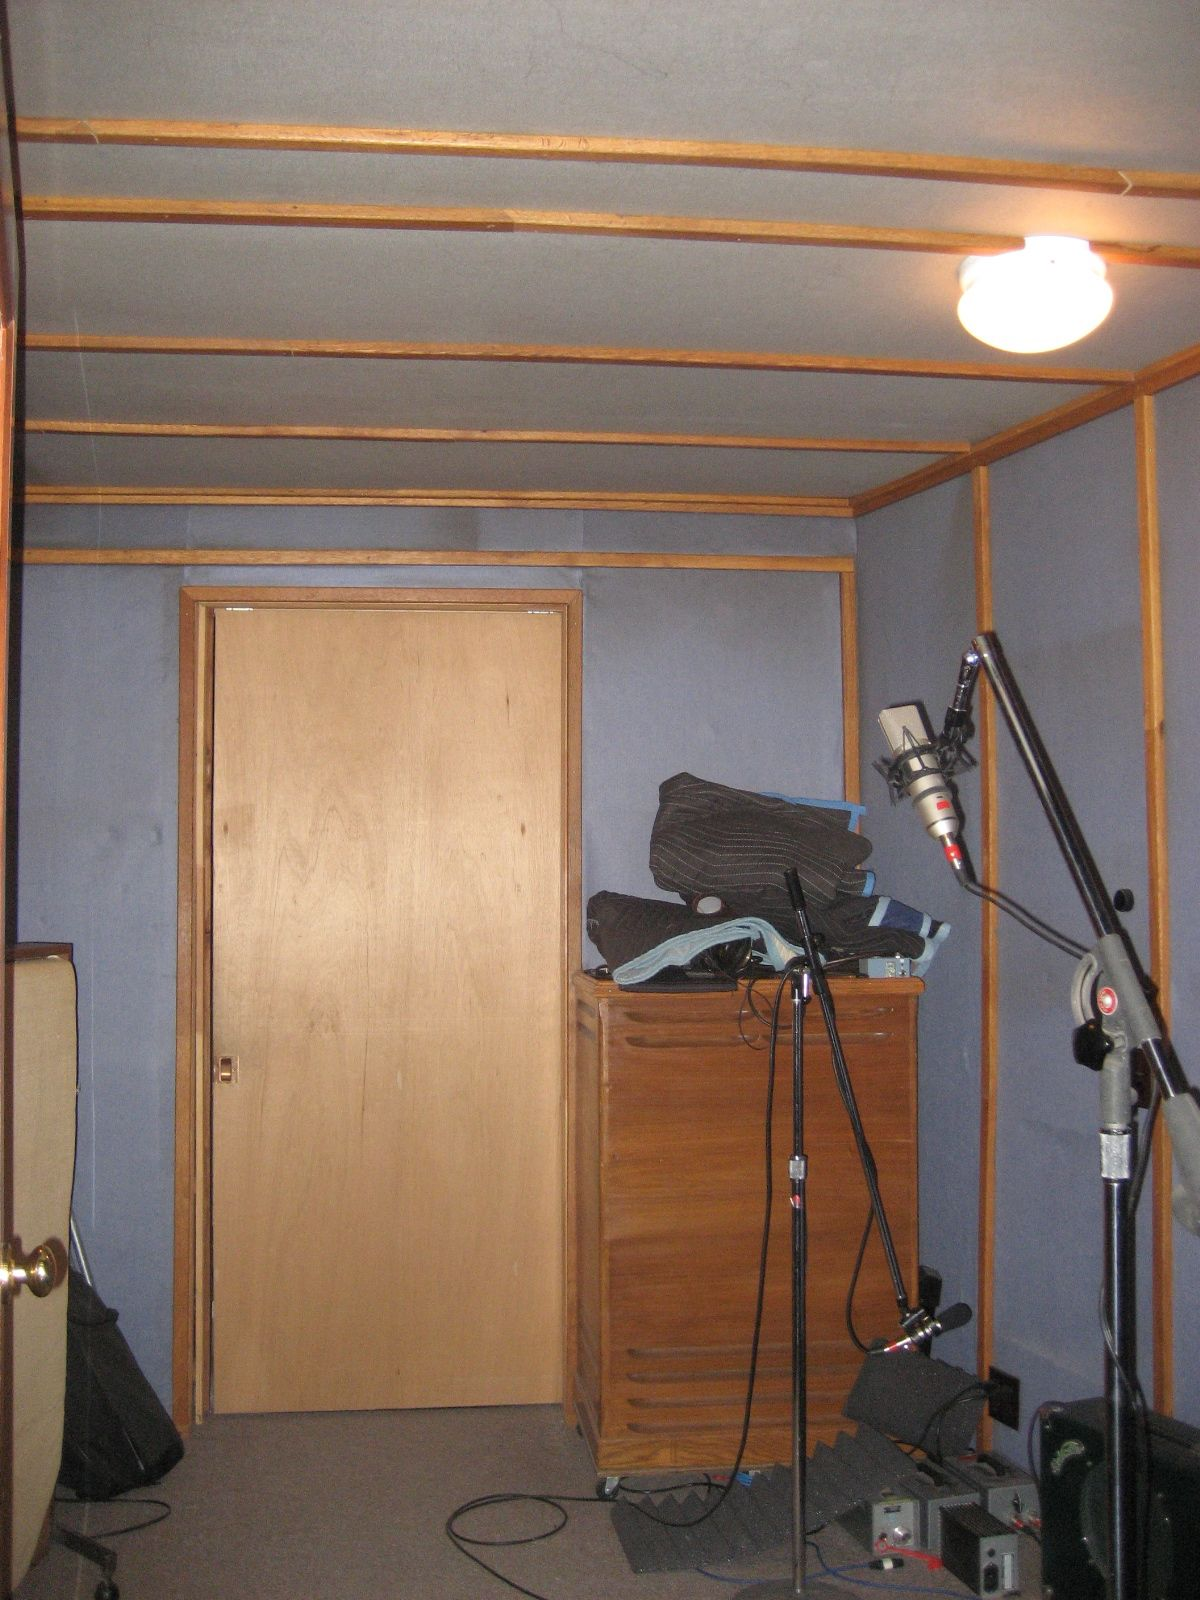 Basement Ceiling Ideas Fabric. drum1 jpg Anybody here cover their ceiling in fabric iso1  Gearslutz Pro Audio